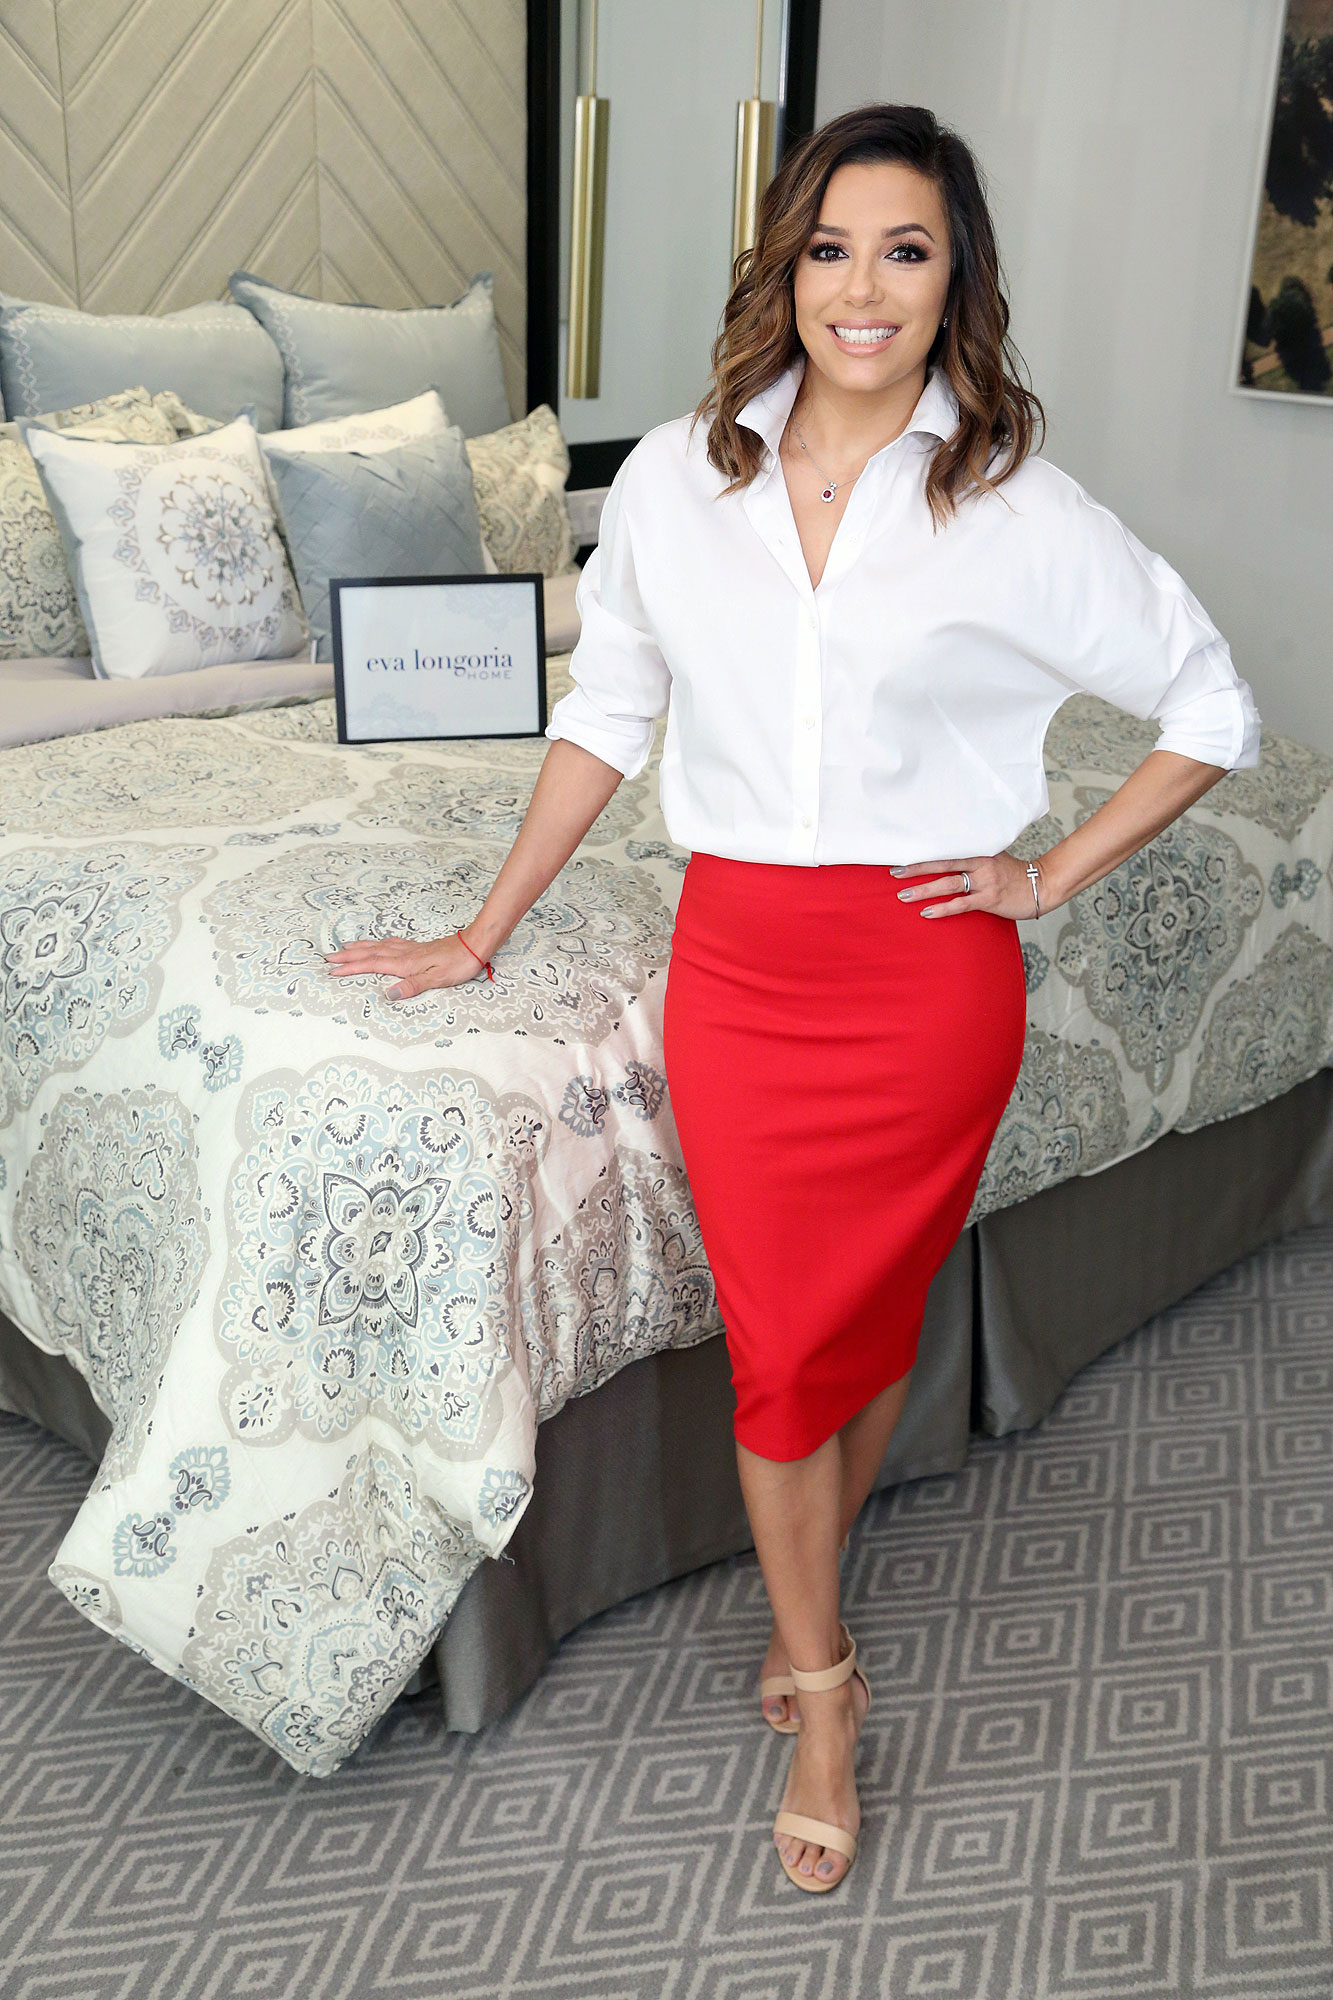 IMAGE DISTRIBUTED FOR JCPENNEY - Eva Longoria and JCPenney celebrate the launch of new bath and bedding designs ñ additions to her exclusive JCPenney collection ñ on Tues., Oct. 4, 2016, in Los Angeles. (Photo by Casey Rodgers/Invision for JCPenney/AP Images)